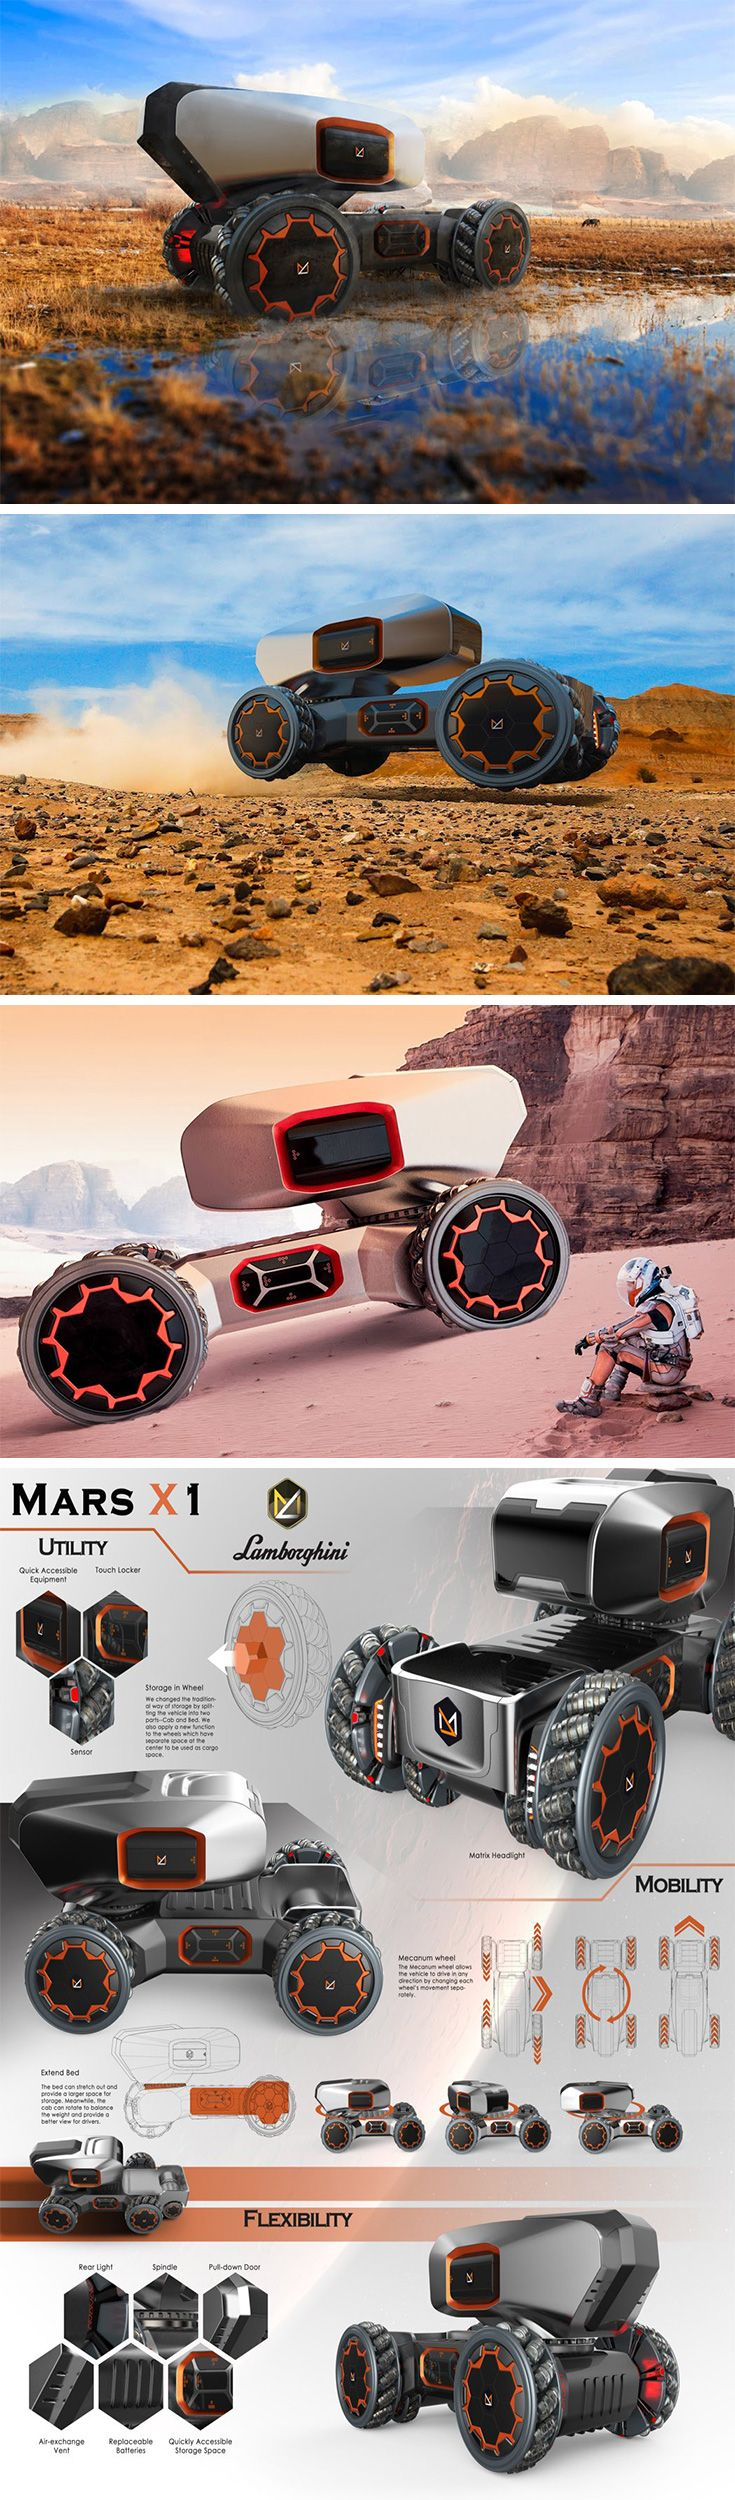 The chances of Lamborghini making a pickup truck are about as good as us colonizing Mars! Just for kicks, the Lambo Mars X1 explores both! Designed for future martian dwellers, this ultramodern pickup truck features all the fixings needed to rover the red planet. Whether it's for collecting soil samples or storing medical supplies, this vehicle is all about storage.